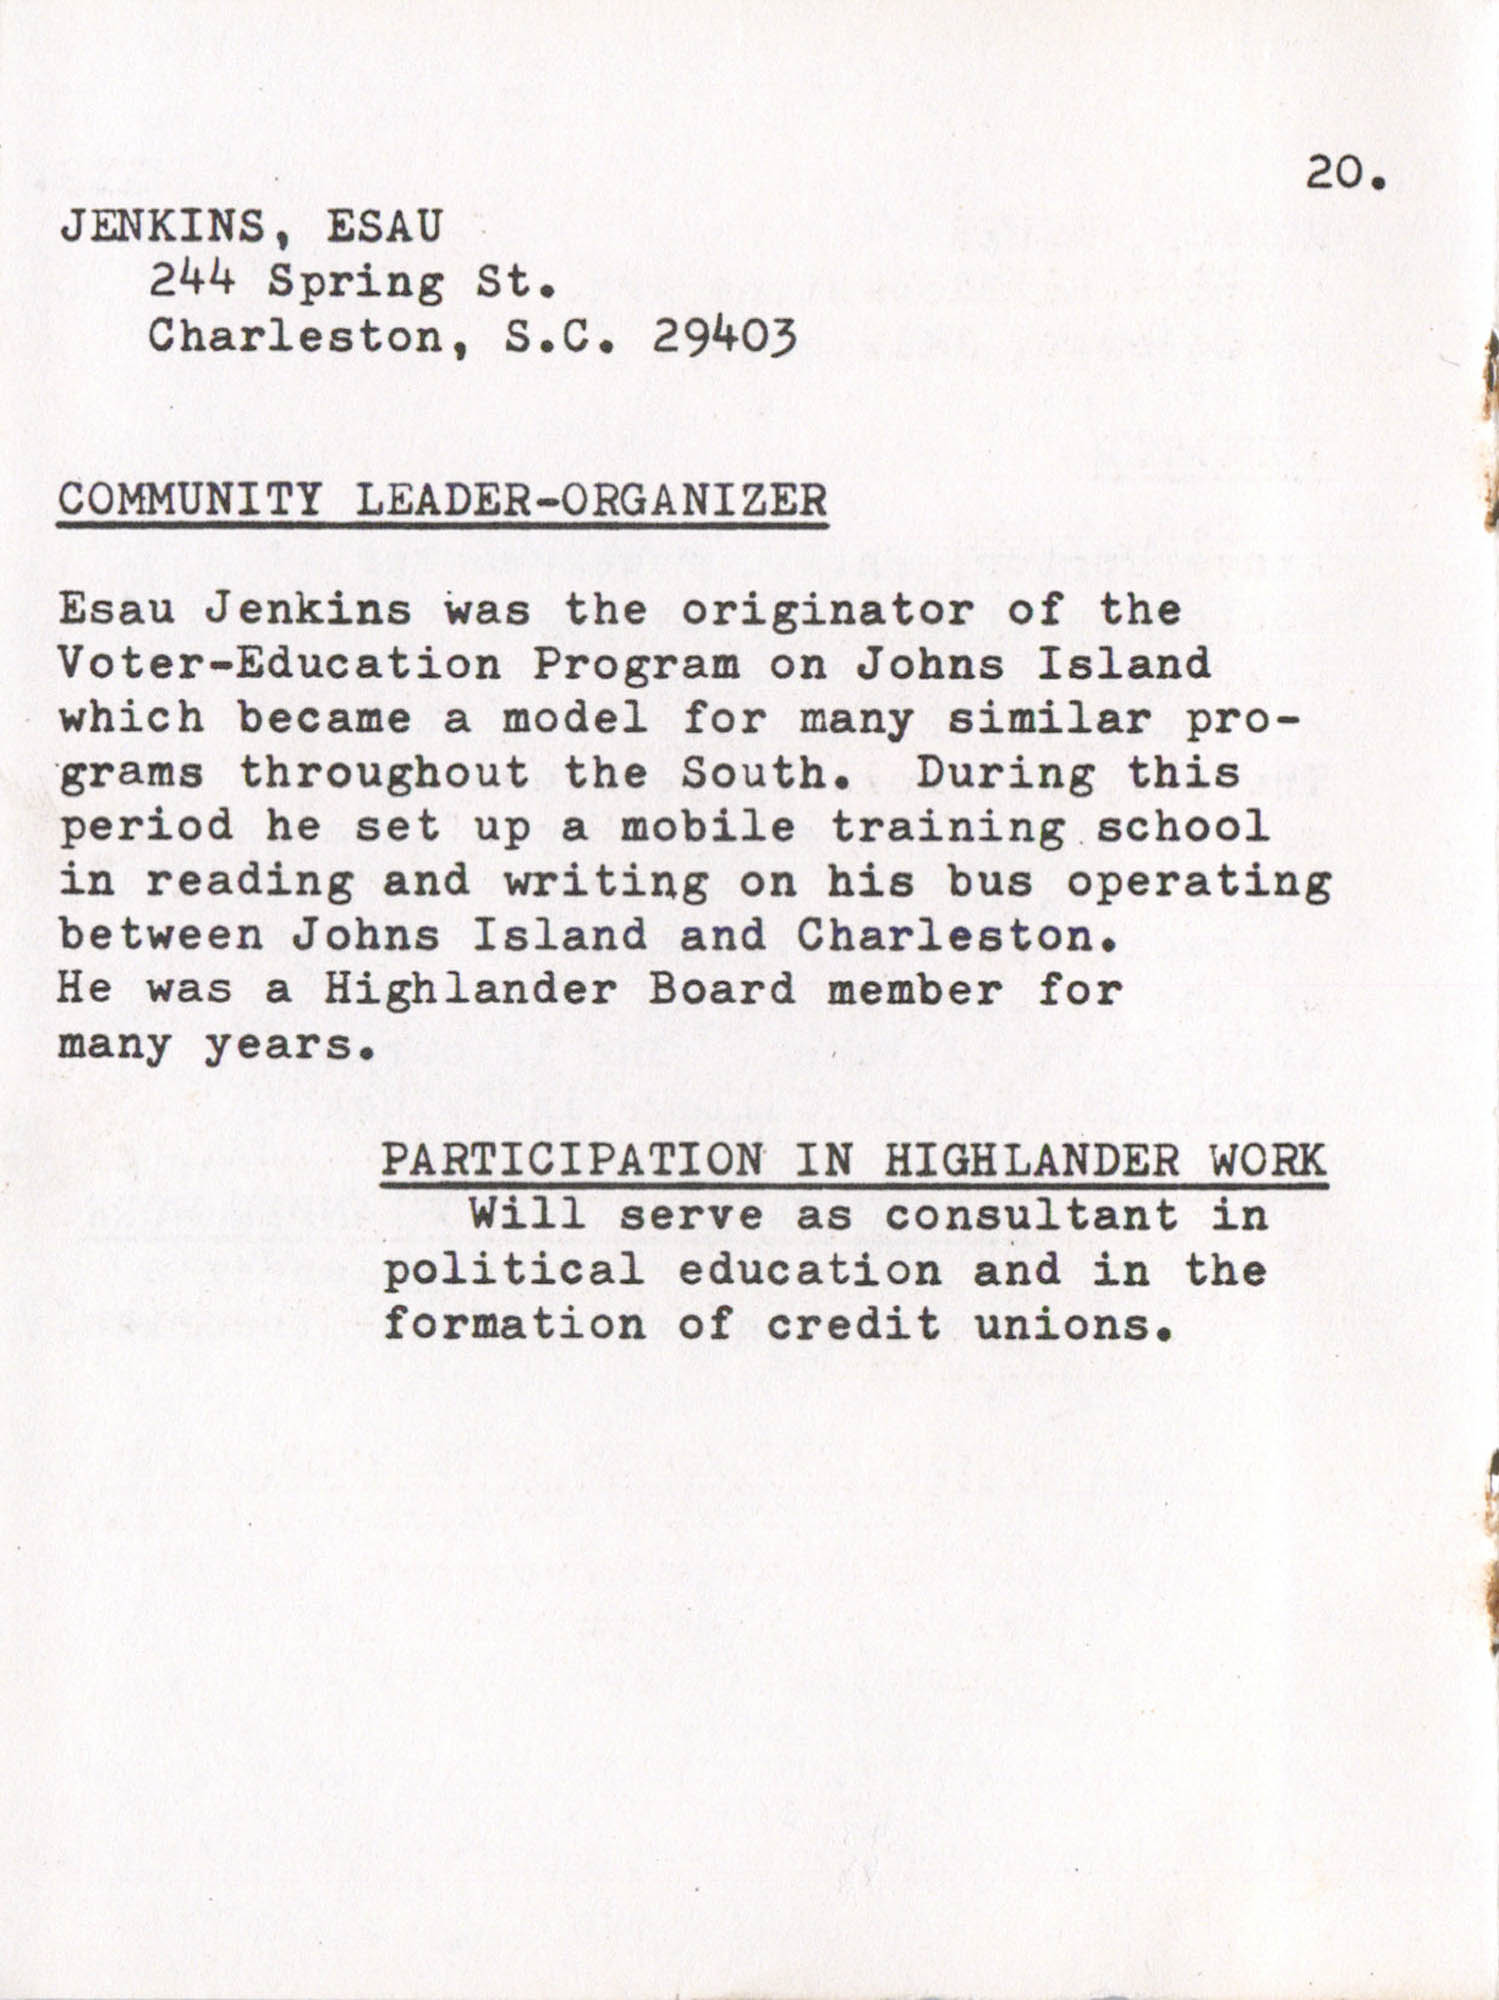 Highlander Research and Educational Center's Committee on Resources Directory, Page 20